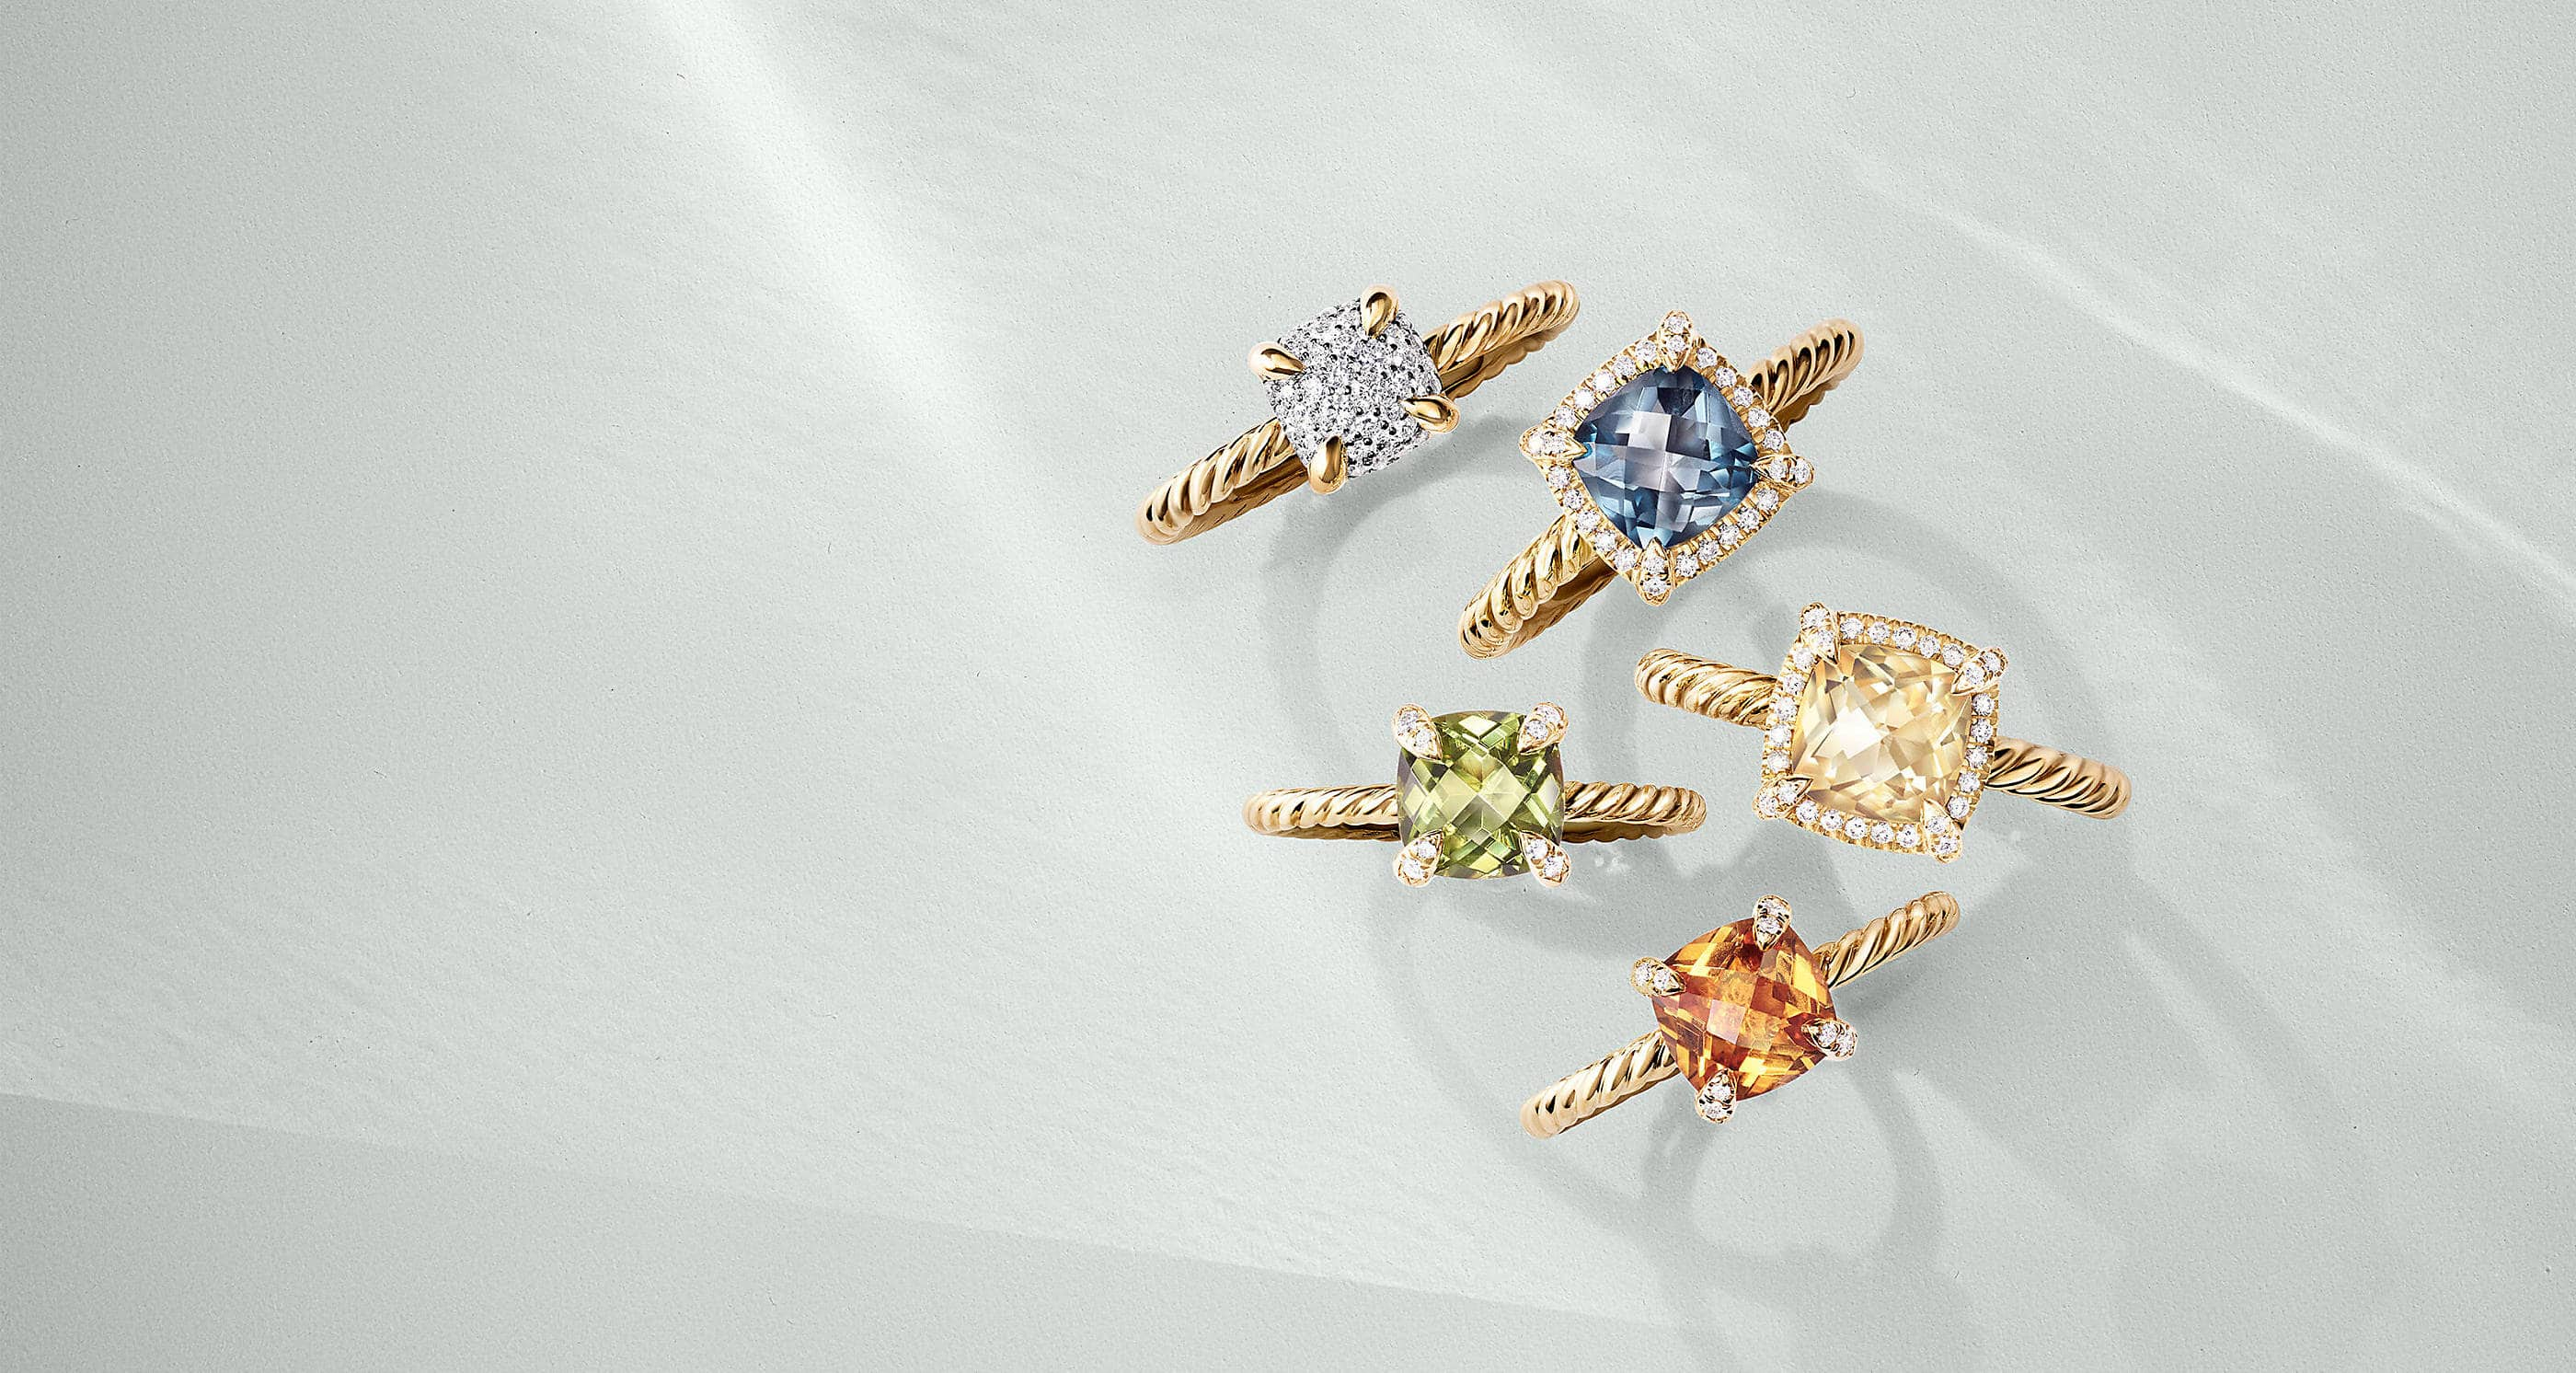 A color photo shows an overhead shot of five David Yurman Châtelaine rings standing on a white background with soft shadows. The jewelry is crafted from 18K yellow gold. One ring features pavé diamonds covering a cushion-shaped center. The other rings feature pavé diamond accents on the bezel or prongs with a center stone of Hampton blue topaz, peridot, Champagne or Madeira citrine.